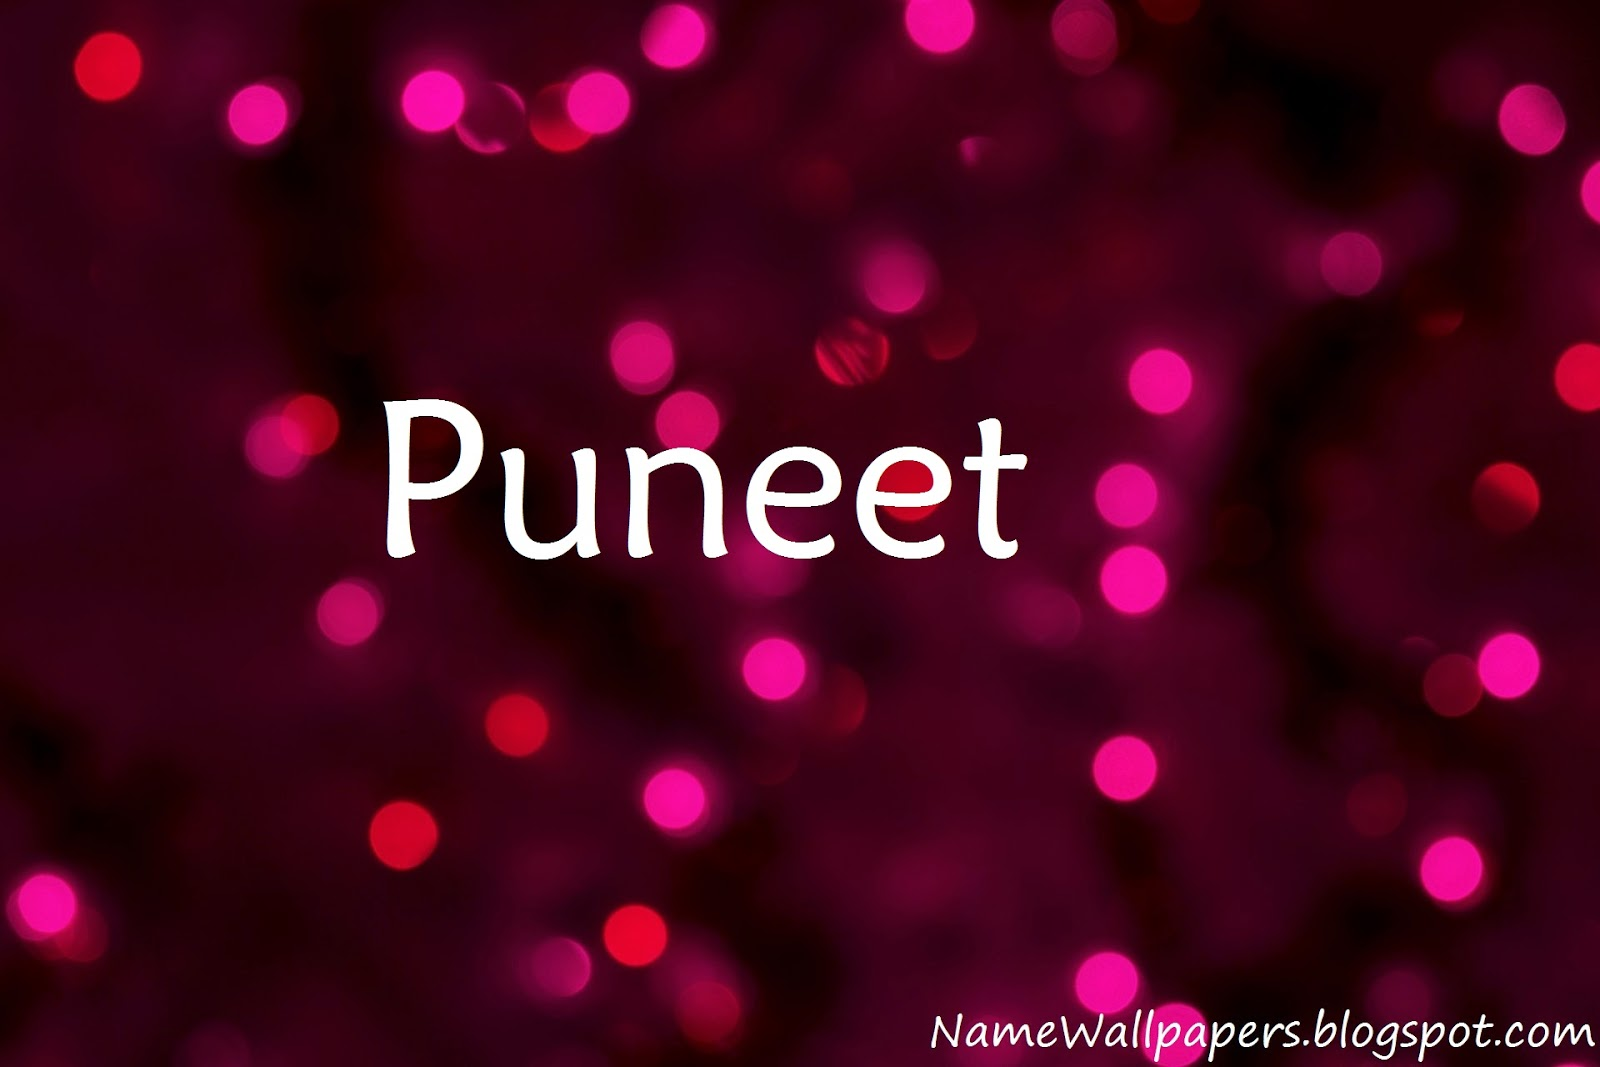 Puneet Name Wallpapers